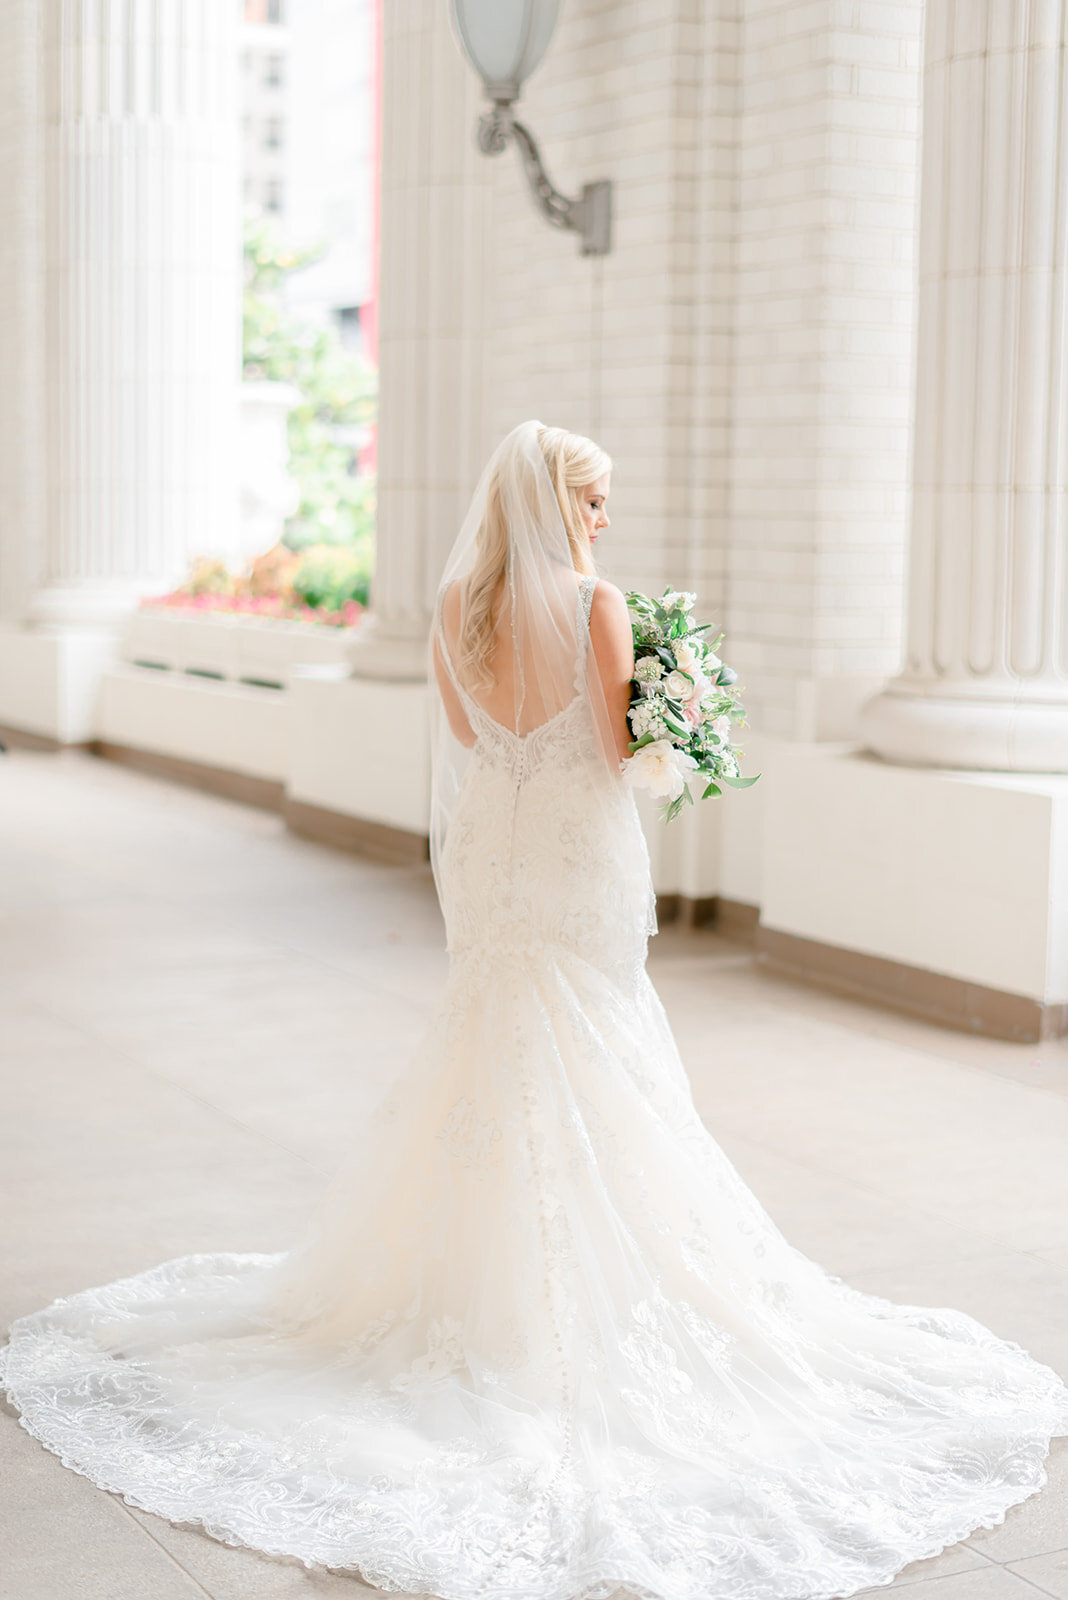 Bridal portrait at union station